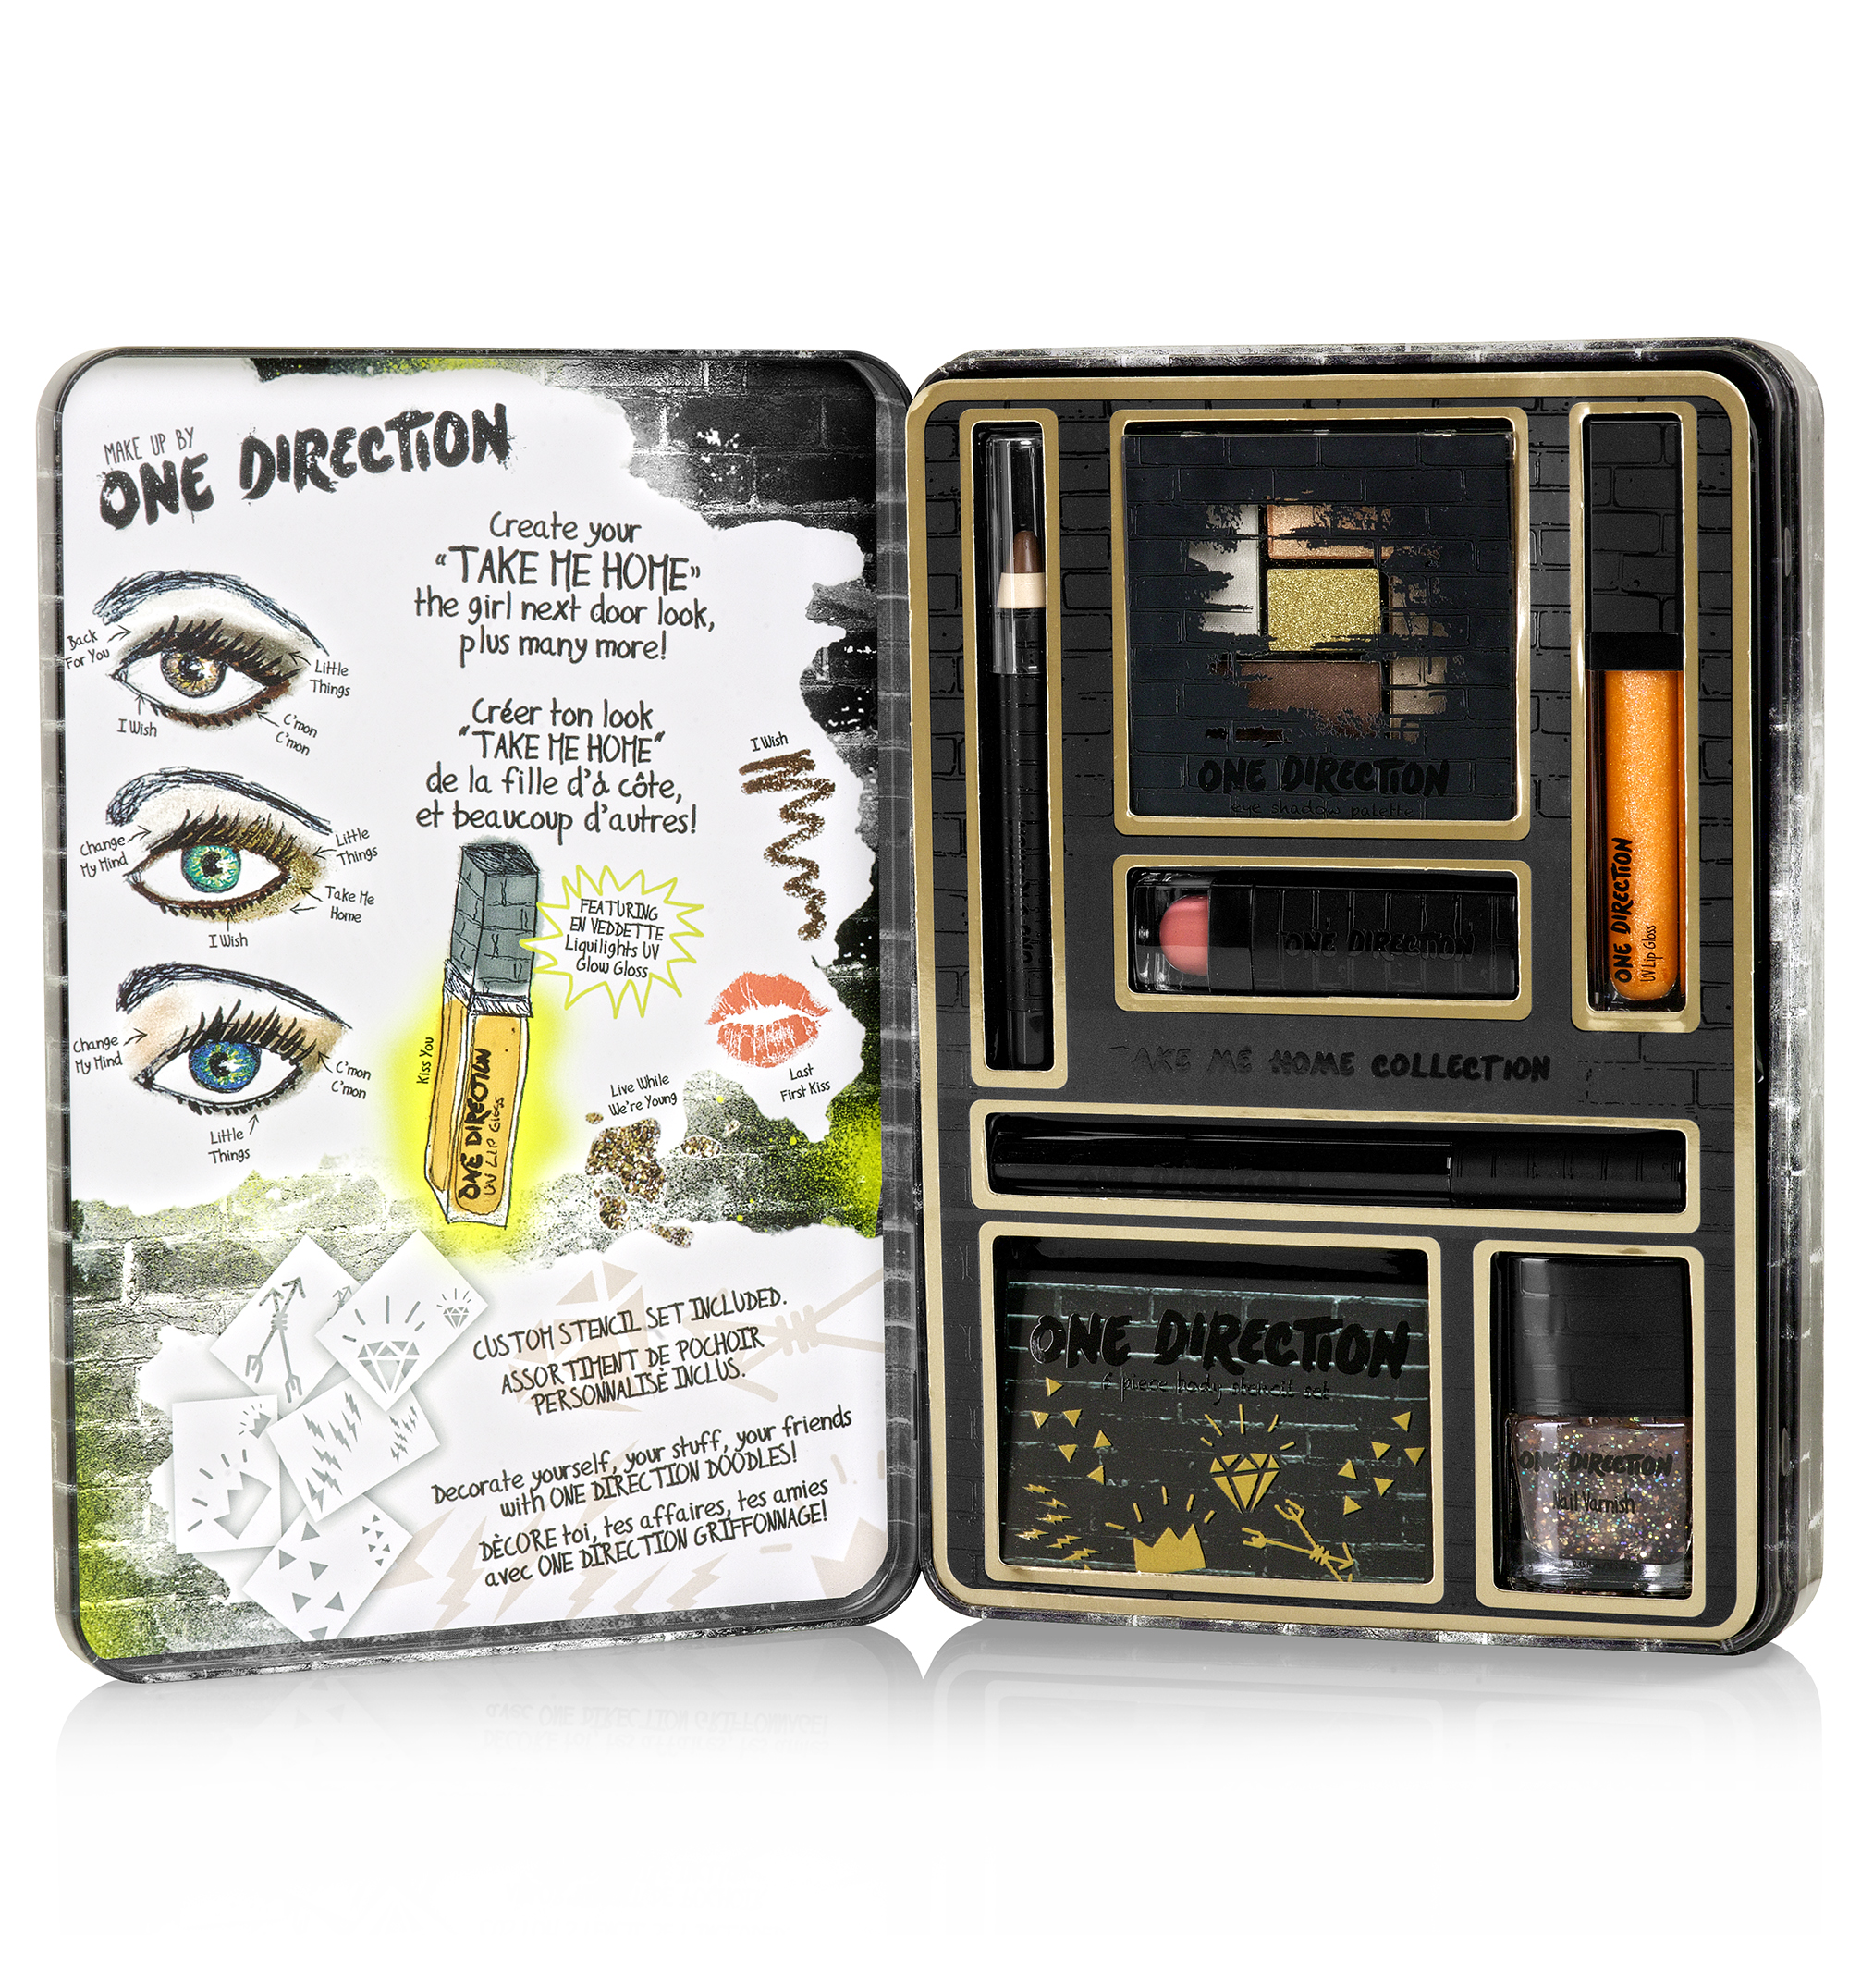 One Direction Makeup Giveaway 2